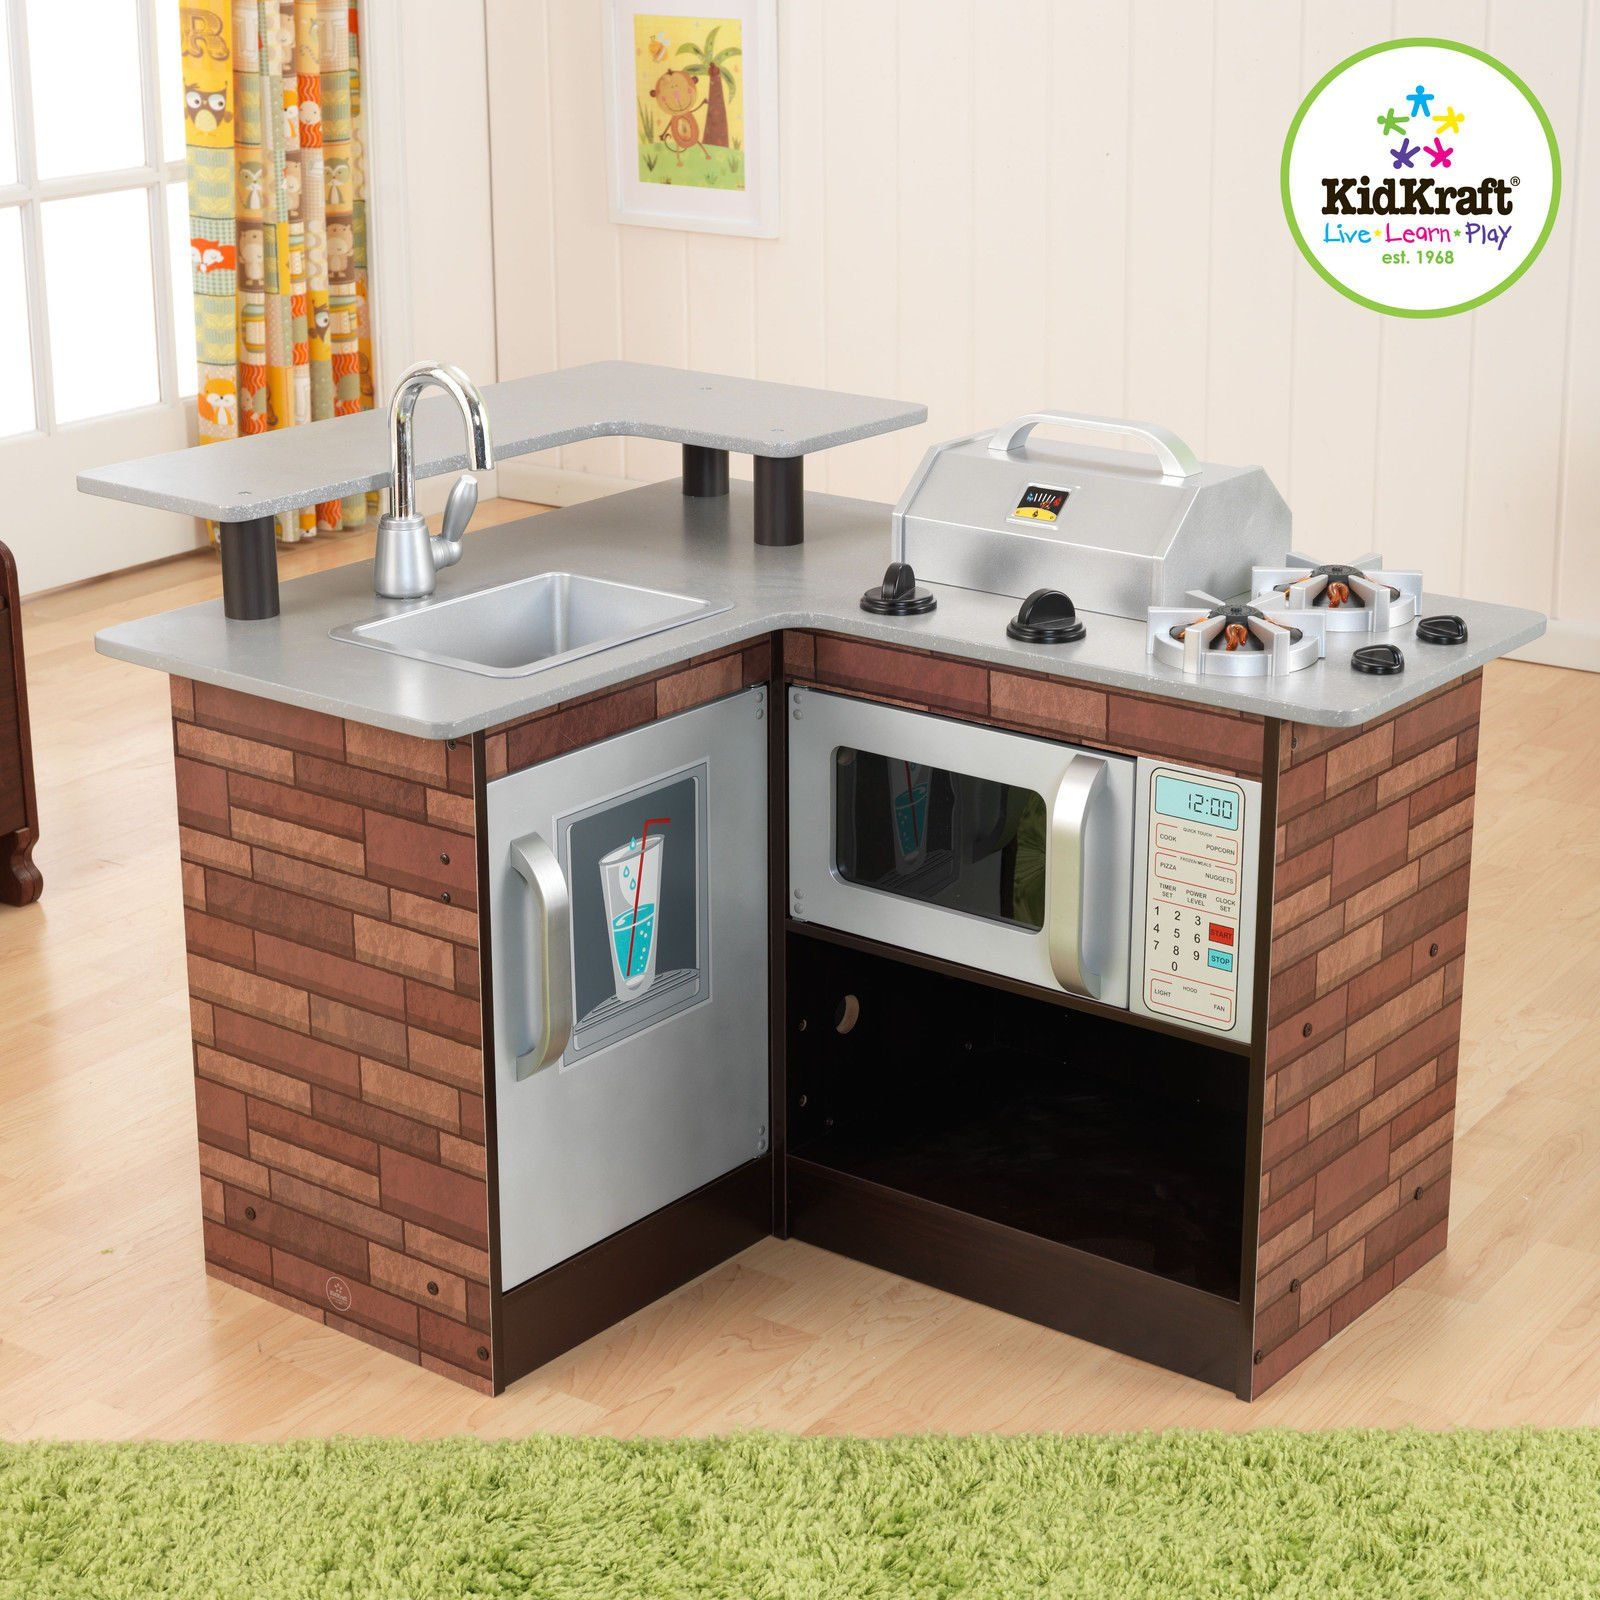 Kidkraft Chillin' & Grillin' Wooden Kitchen Chill and